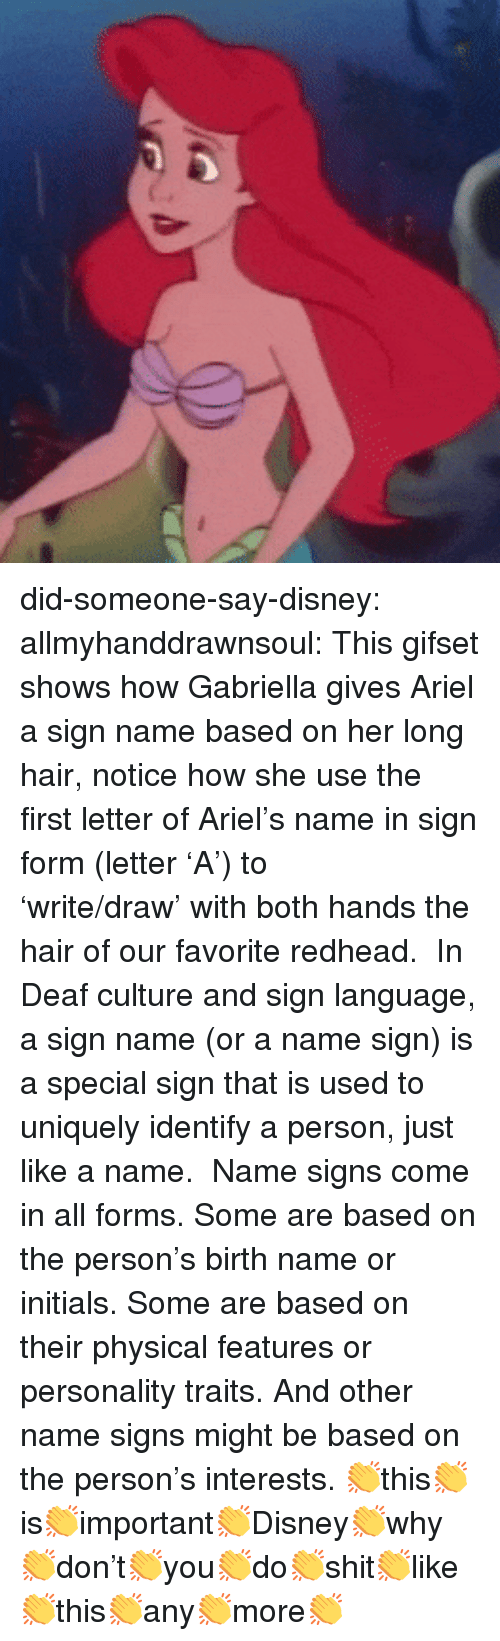 Ariel, Disney, and Tumblr: did-someone-say-disney: allmyhanddrawnsoul:    This gifset shows how Gabriella gives Ariel a sign name based on her long hair, notice how she use the first letter of Ariel's name in sign form (letter 'A') to 'write/draw' with both hands the hair of our favorite redhead.    In Deaf culture and sign language, a sign name (or a name sign) is a special sign that is used to uniquely identify a person, just like a name.    Name signs come in all forms. Some are based on the person's birth name or initials. Some are based on their physical features or personality traits. And other name signs might be based on the person's interests.     👏this👏is👏important👏Disney👏why👏don't👏you👏do👏shit👏like👏this👏any👏more👏